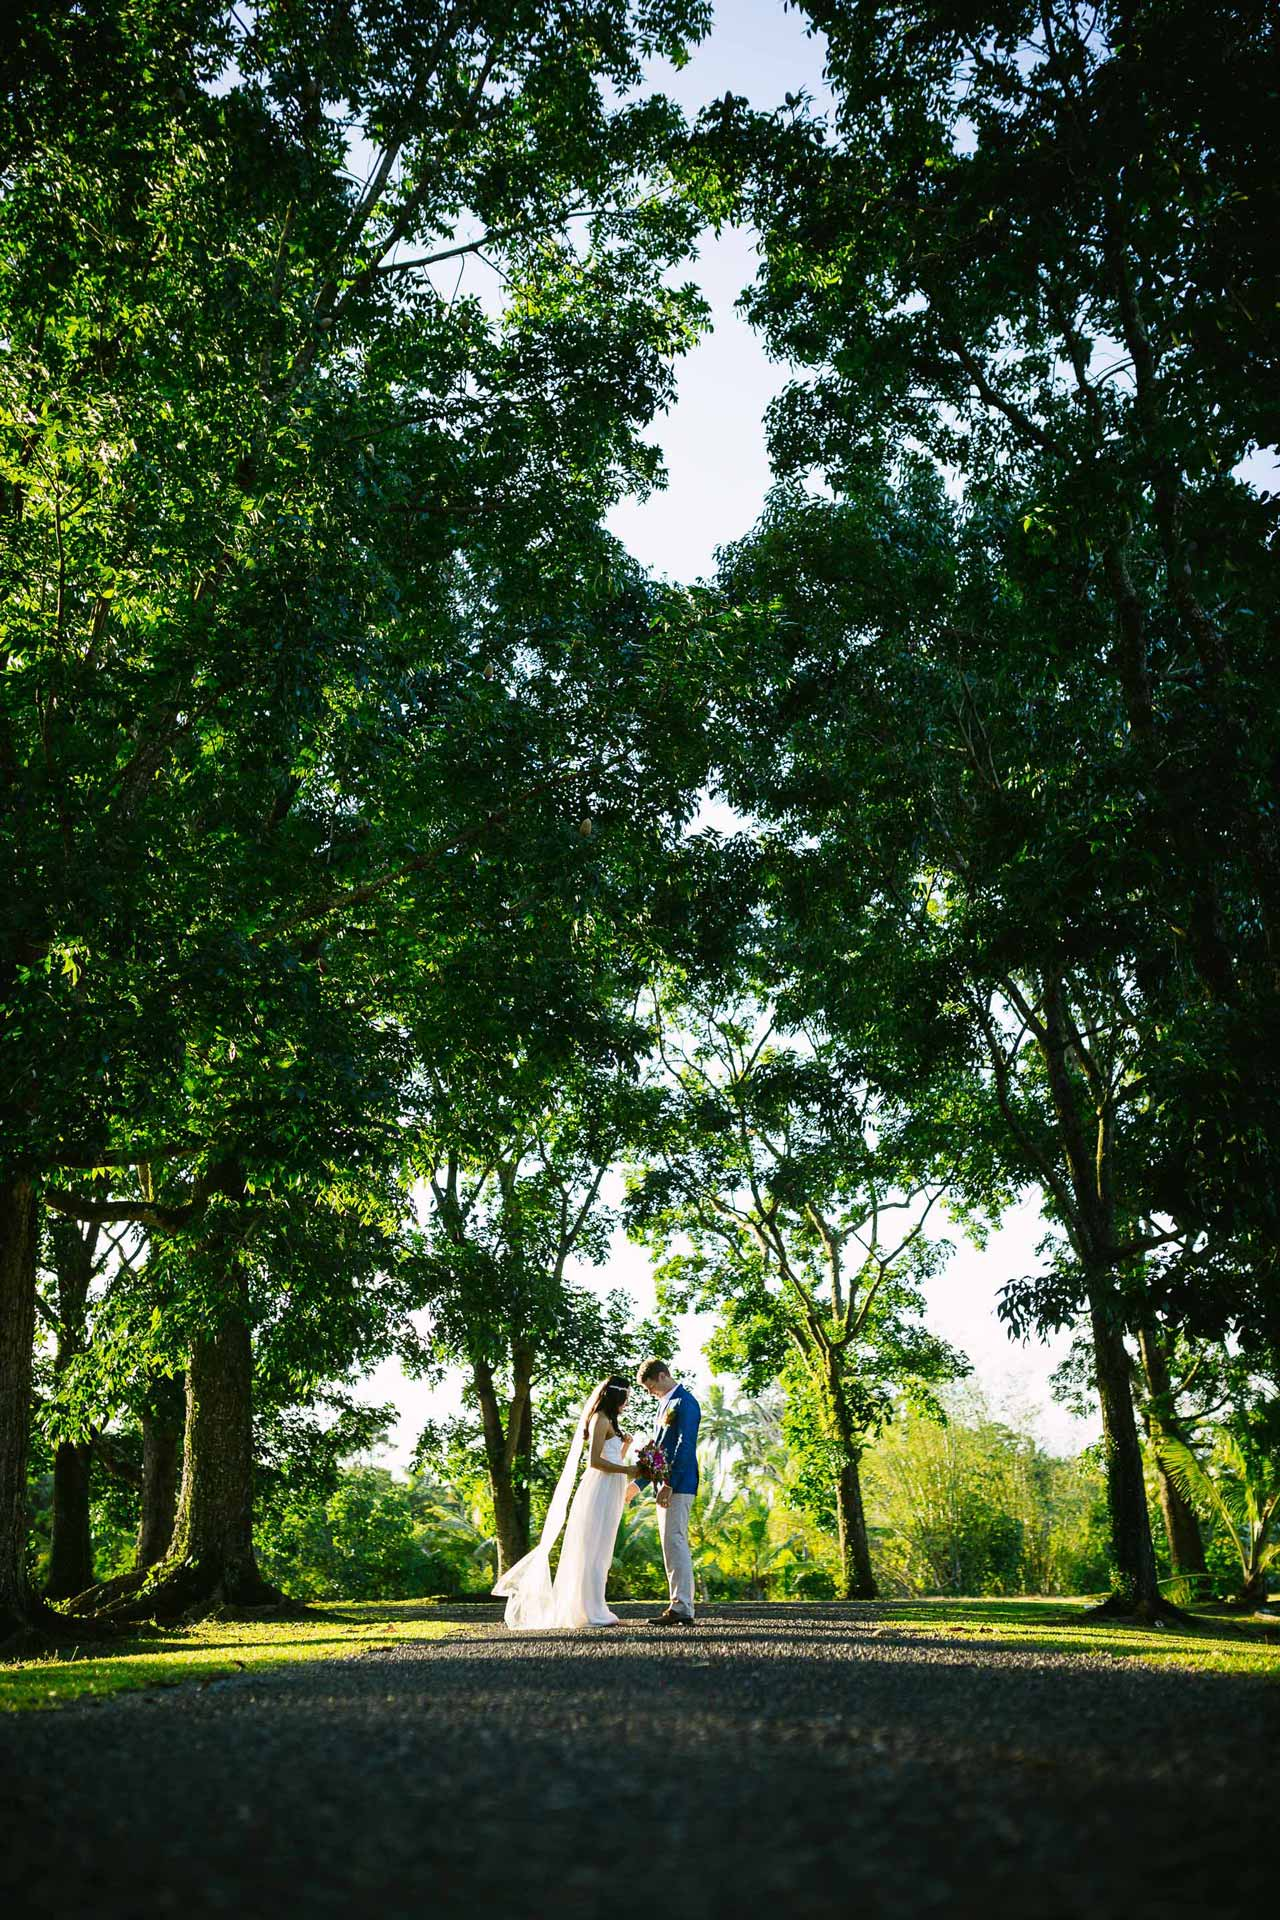 the couple at the end of a tree lined road